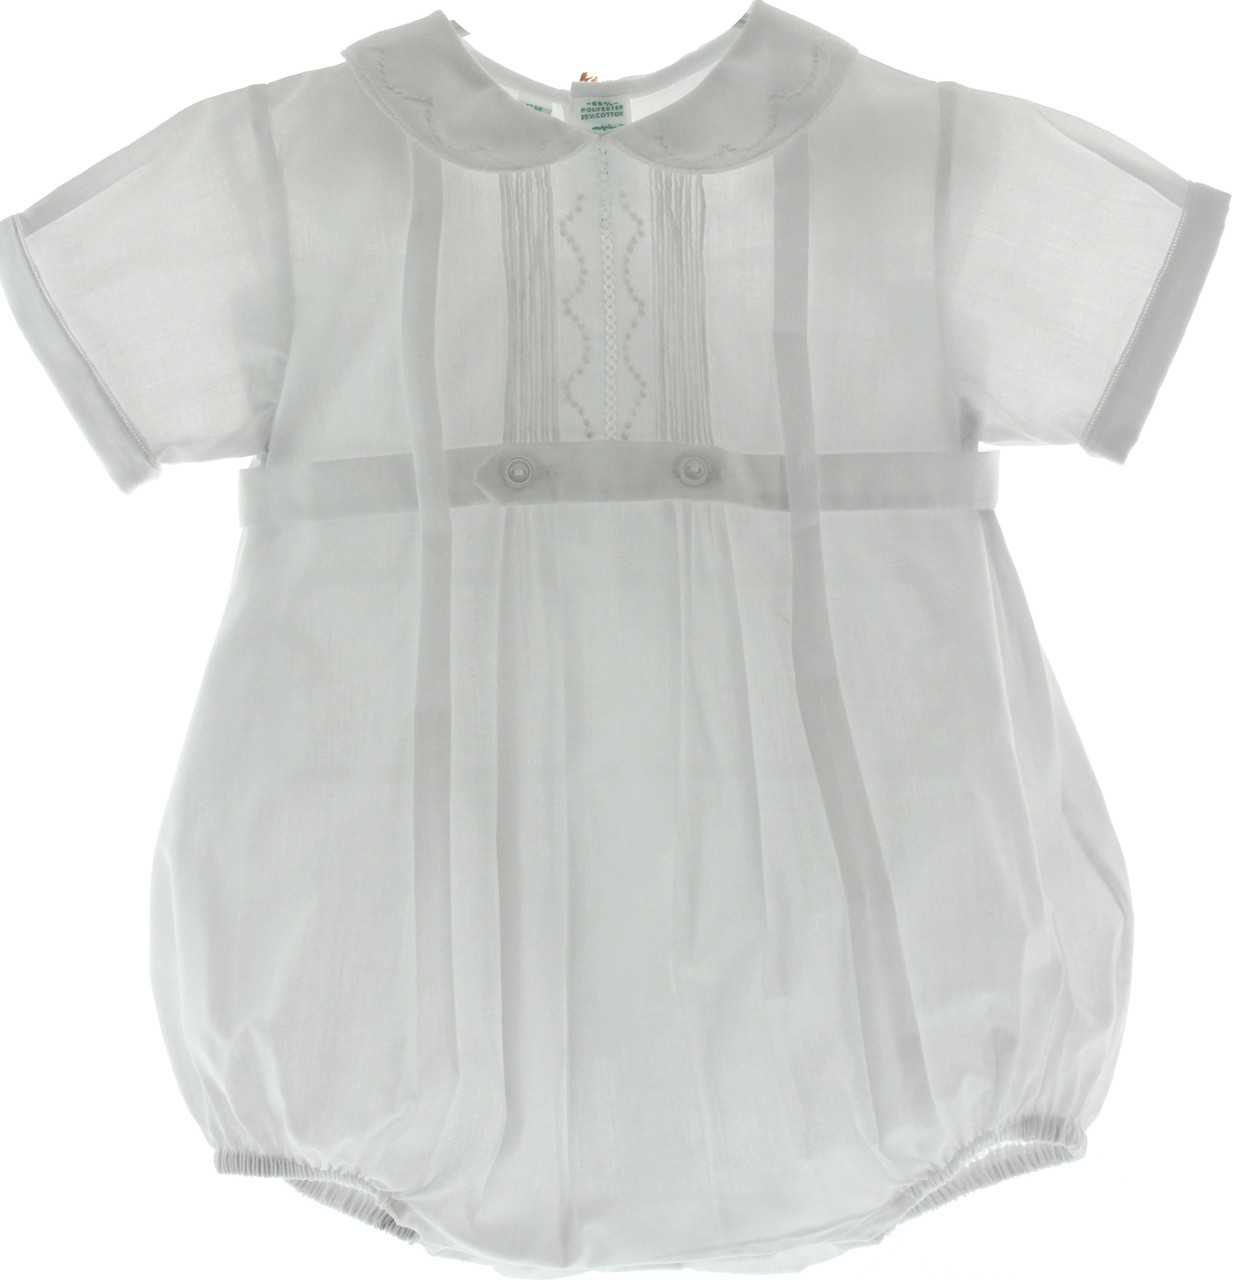 Feltman Brothers Baby Boys White Christening Baptism Bubble Outfit with Collar